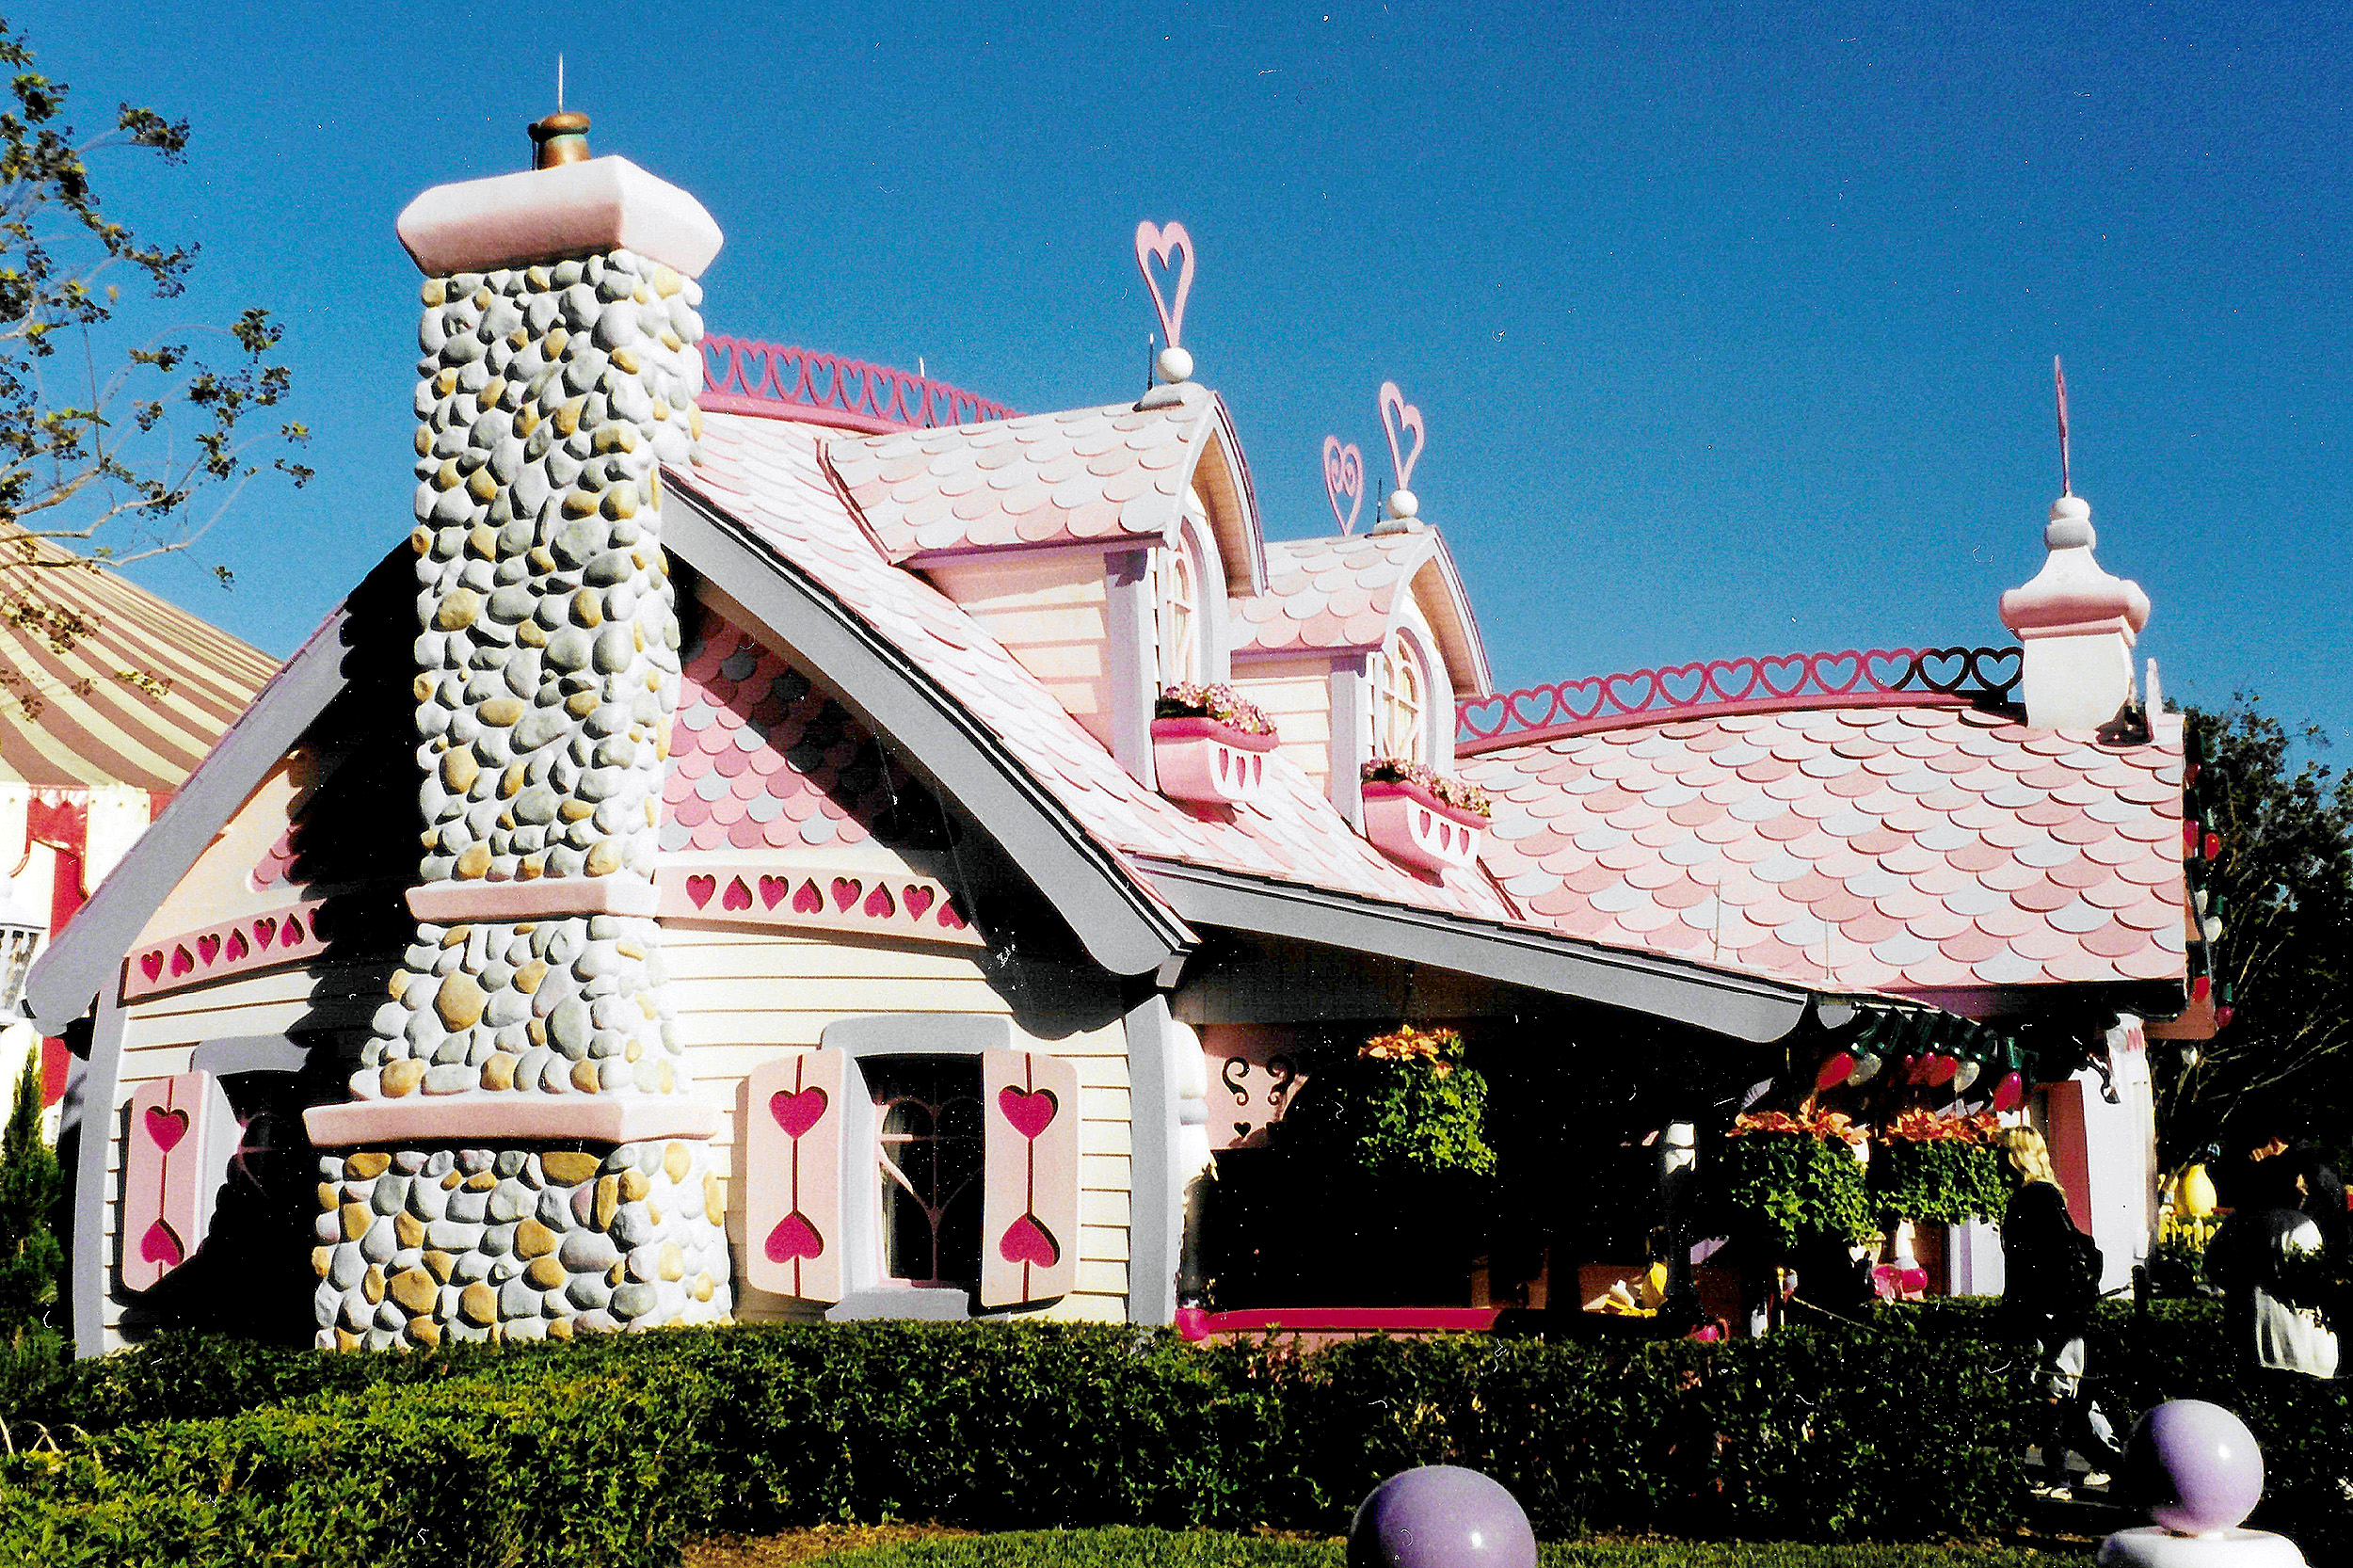 Mimmis hus toontown magic kingdom orlando nyårsafton